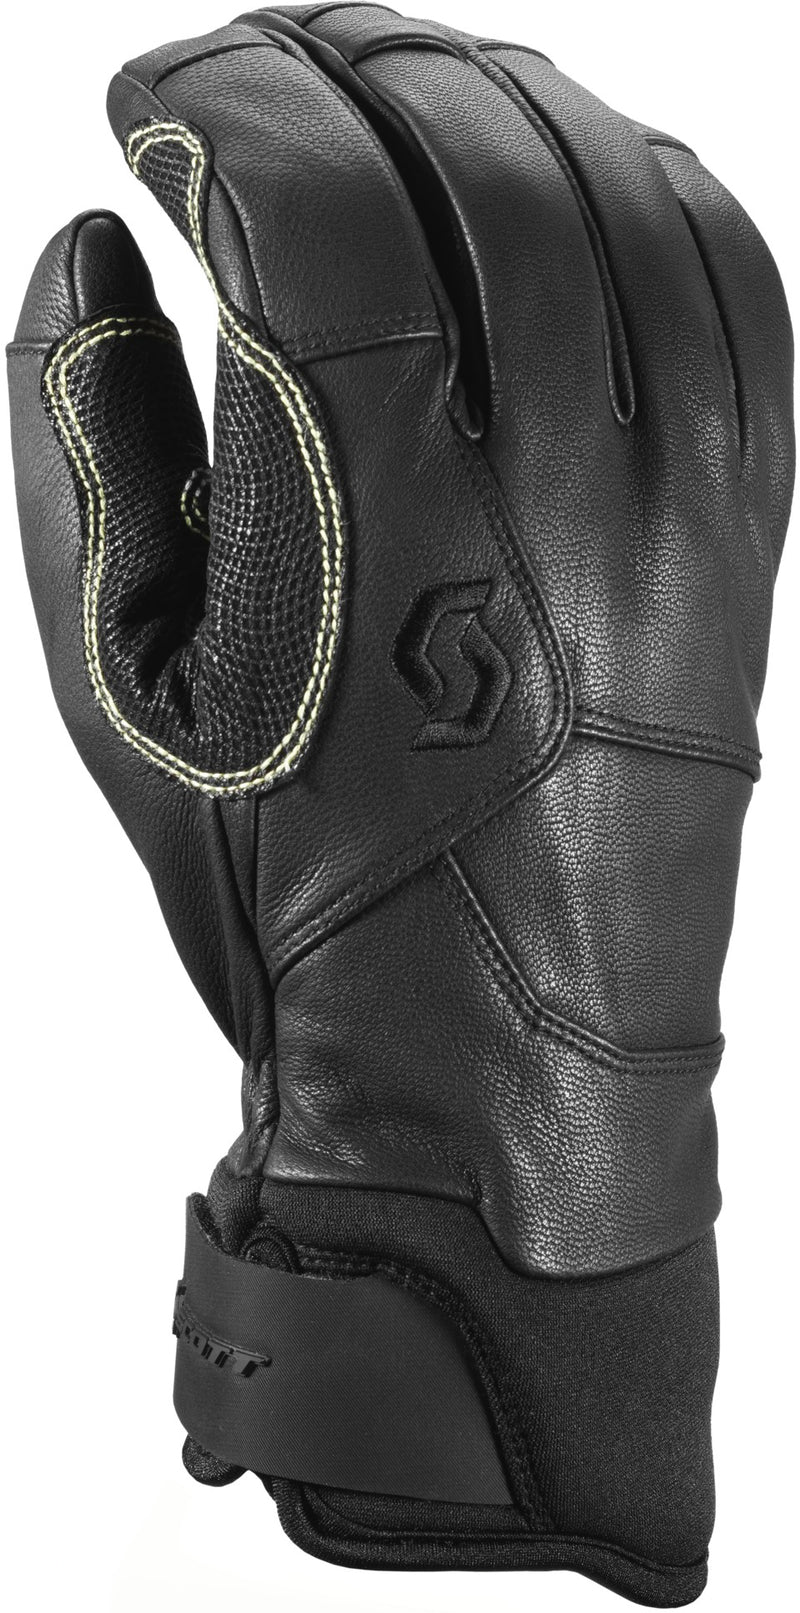 Scott - Explorair Premium GTX - Black - Apparelly Gloves